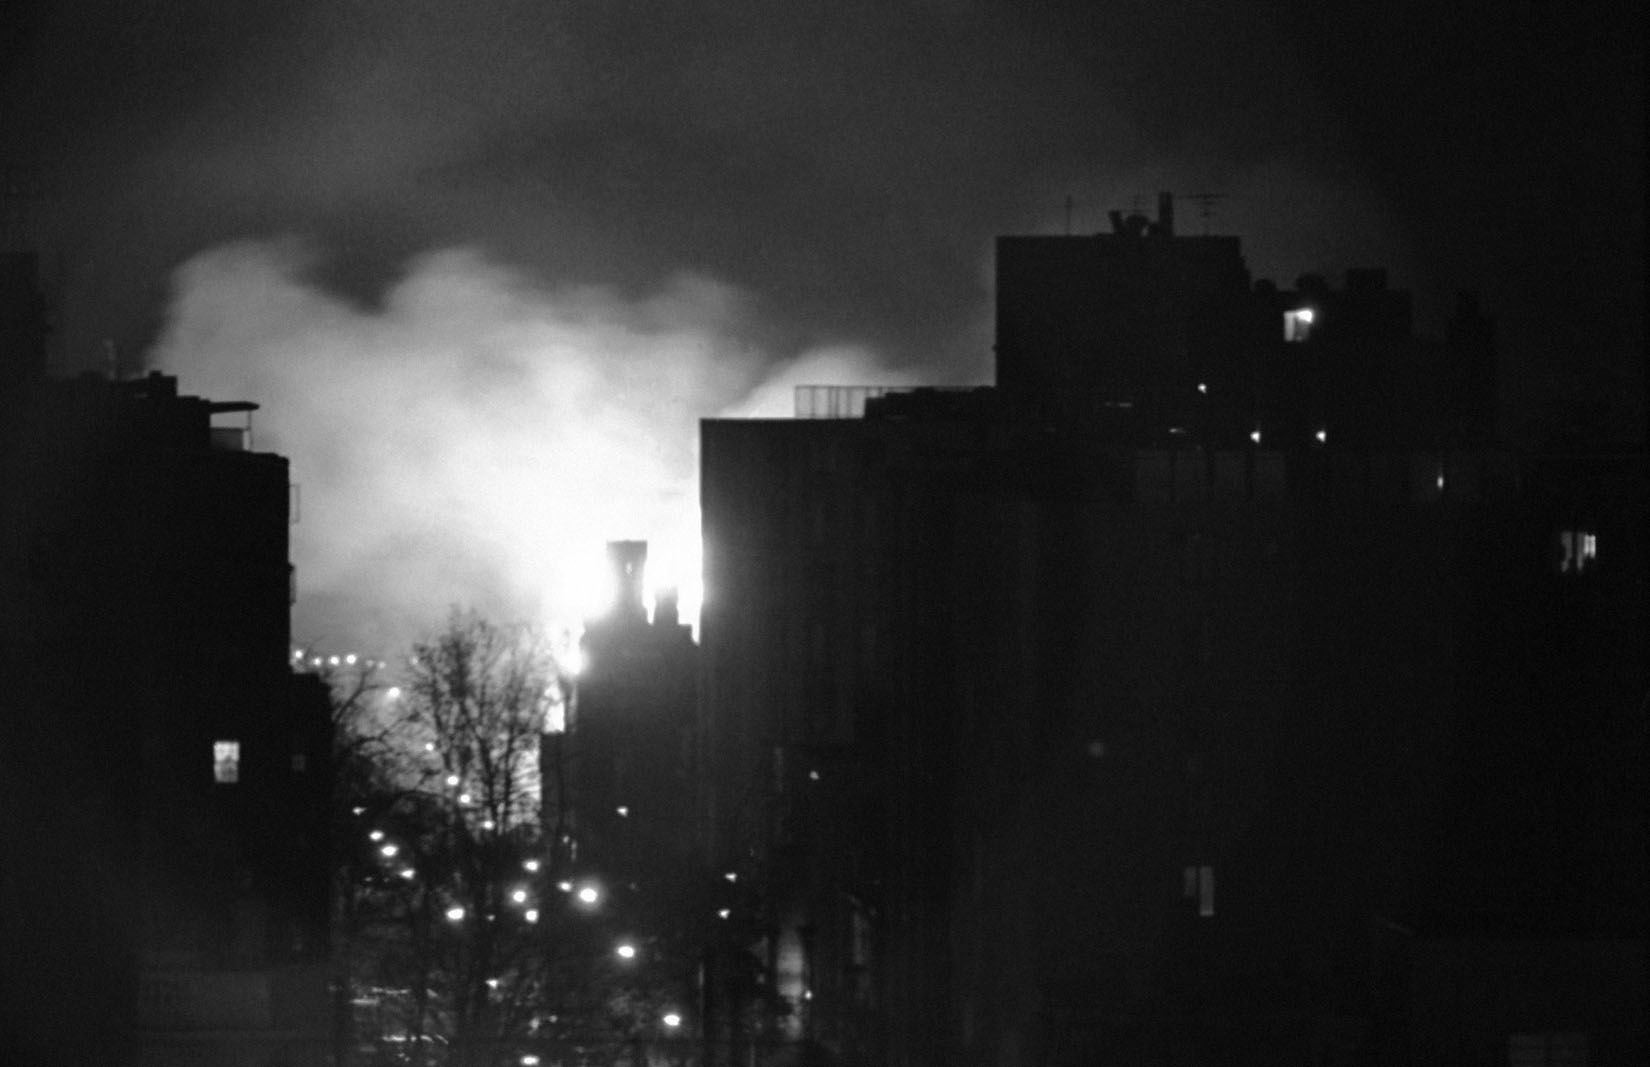 Fires and billowing smoke from burning building during the night in the area of 9th and Massachusetts Ave., N.W., in Washington on April 5, 1968. It was made from the top of the Machinists Union Building at Connecticut Avenue and N Streets, N.W. (AP Photo/Charles W. Harrity)